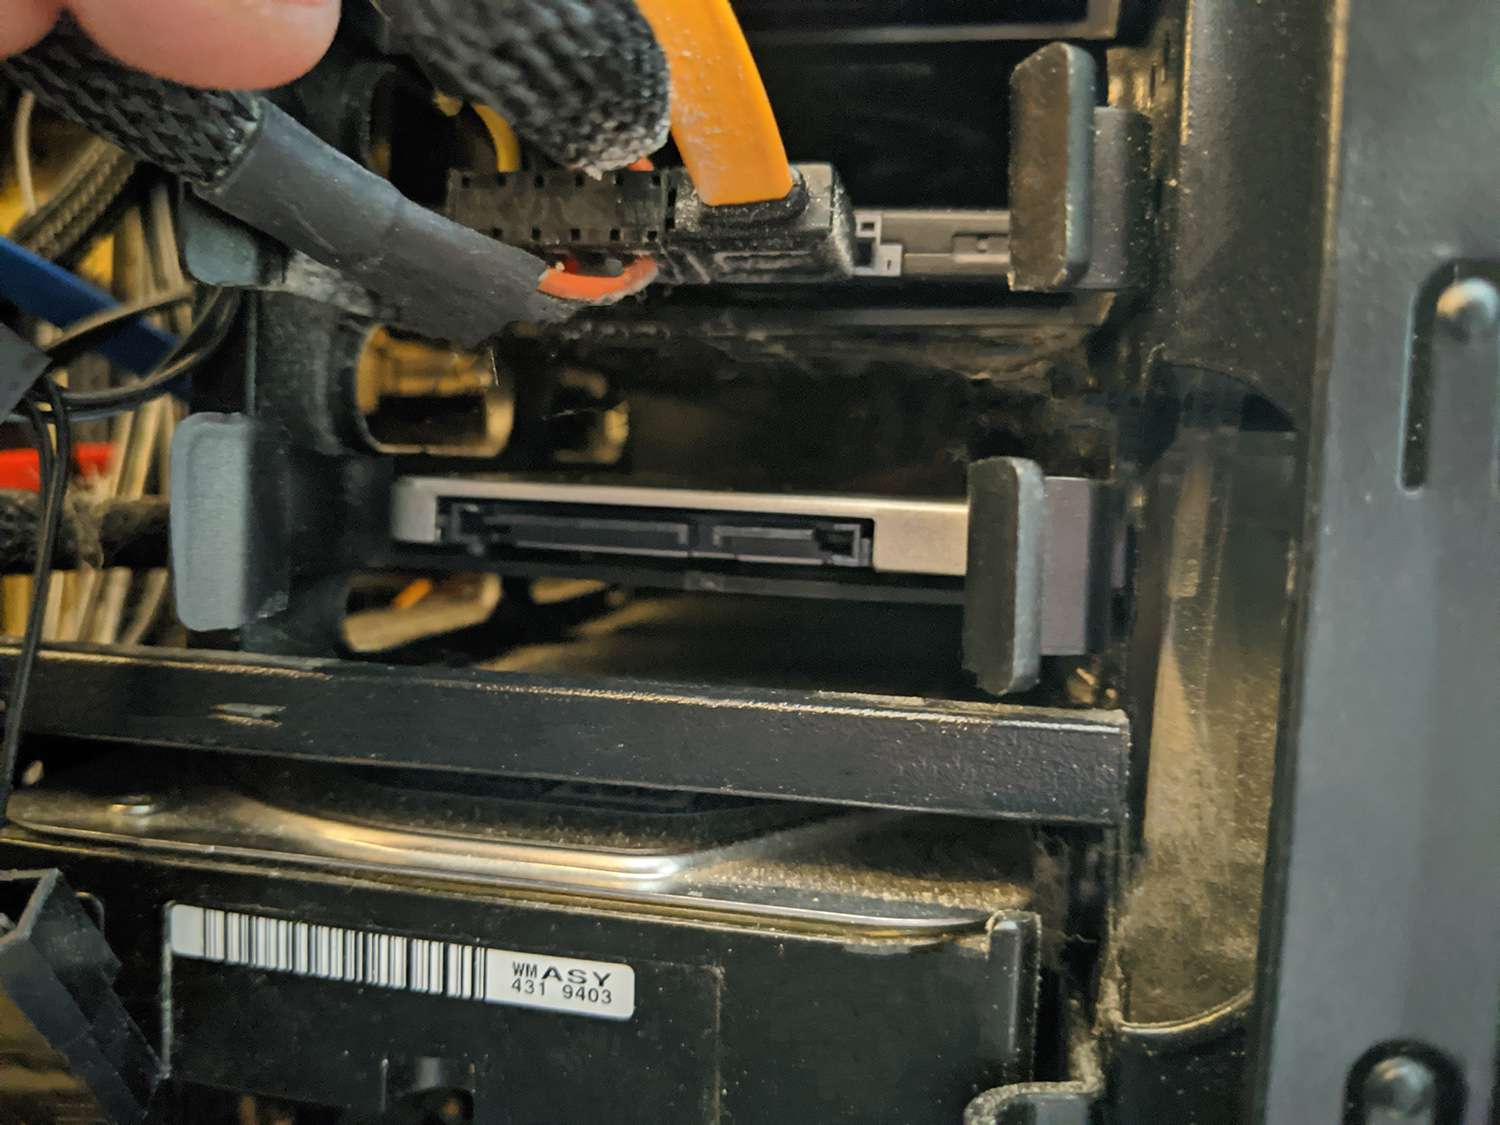 An SSD installed in a drive bay.